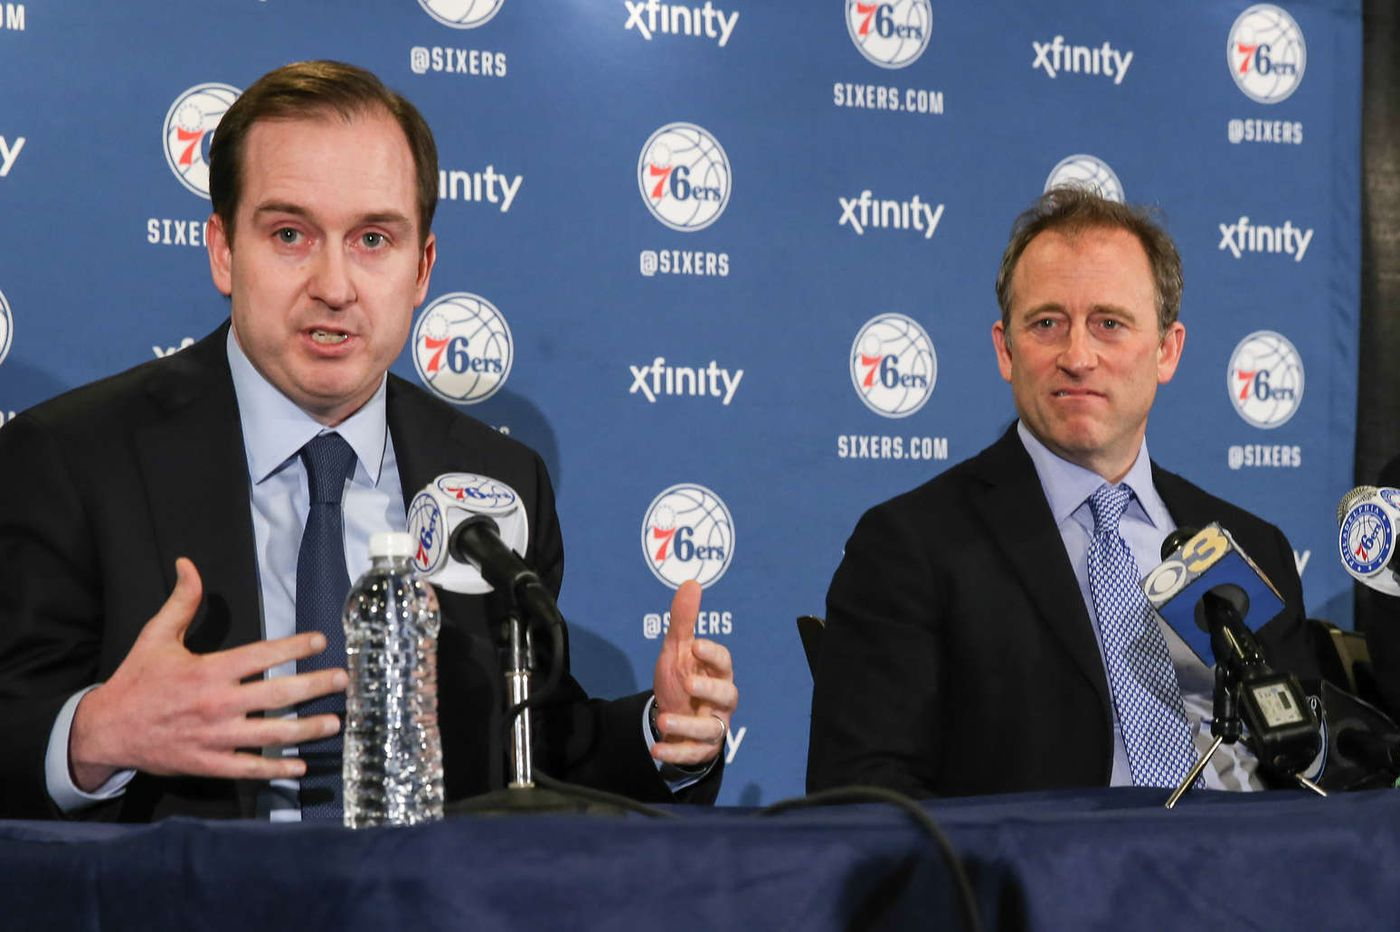 Sixers' underachievement this season pales in comparison to 'The Process' years